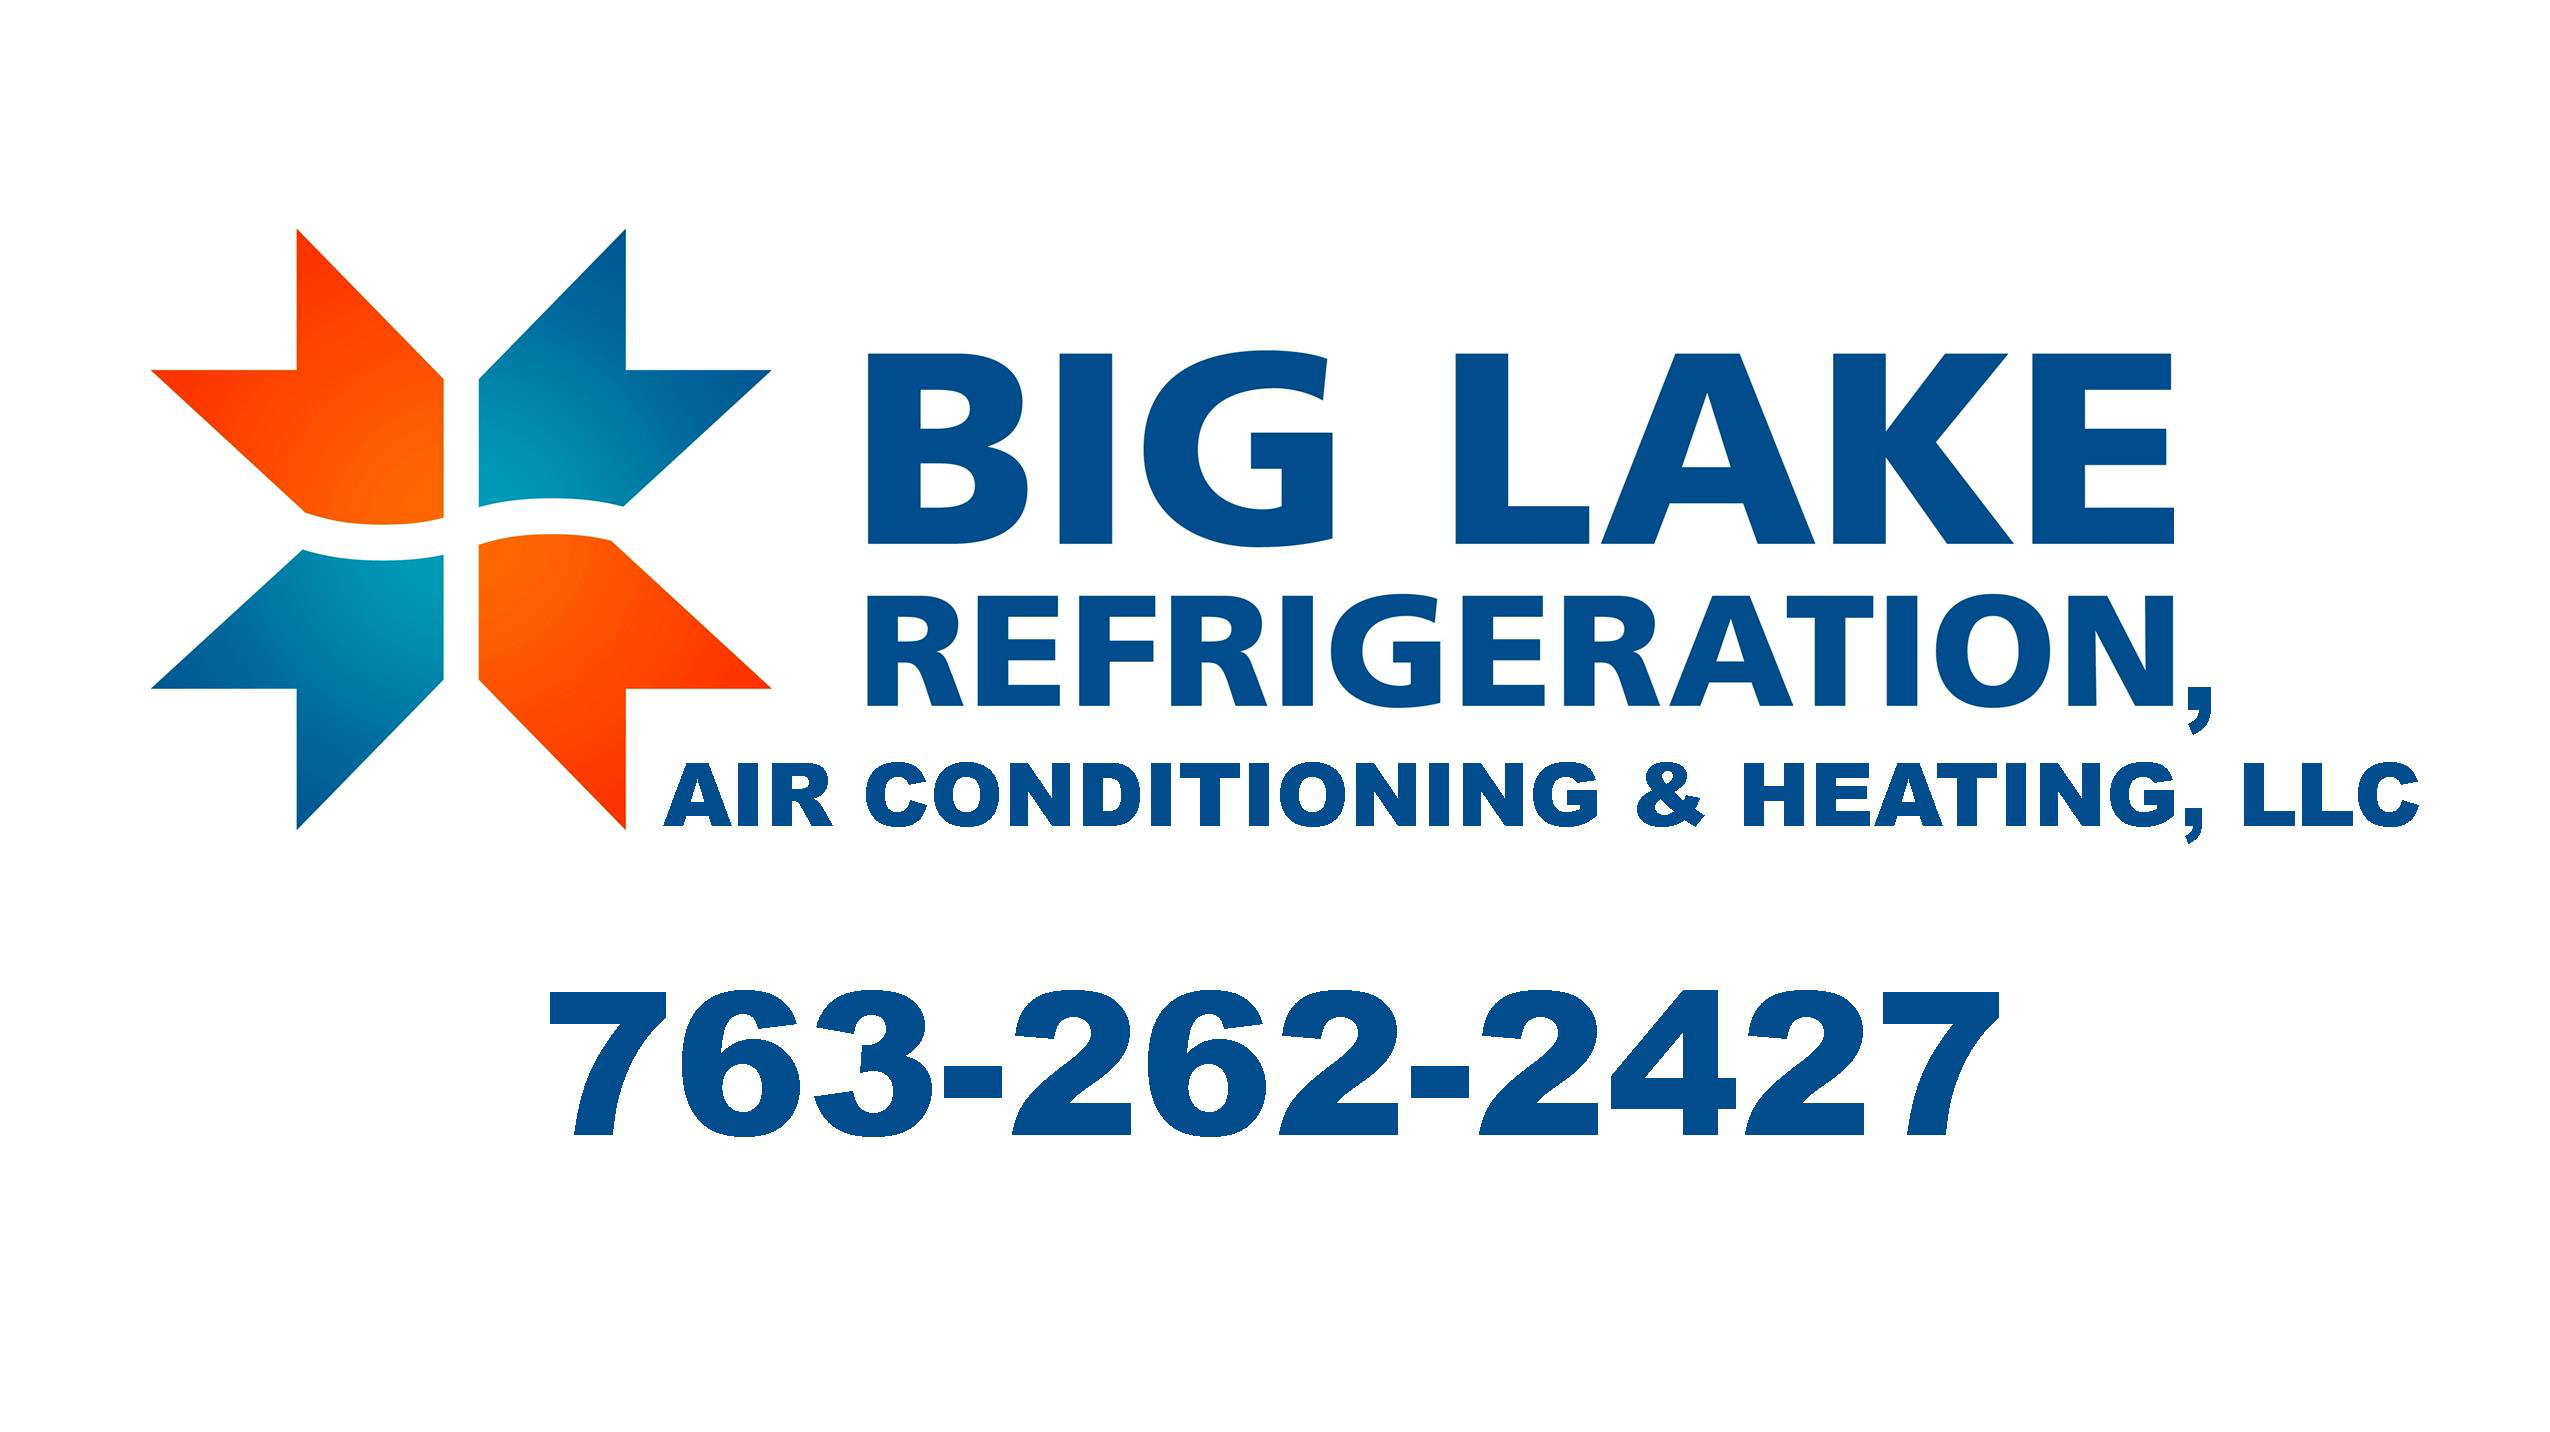 Big Lake Refrigeration